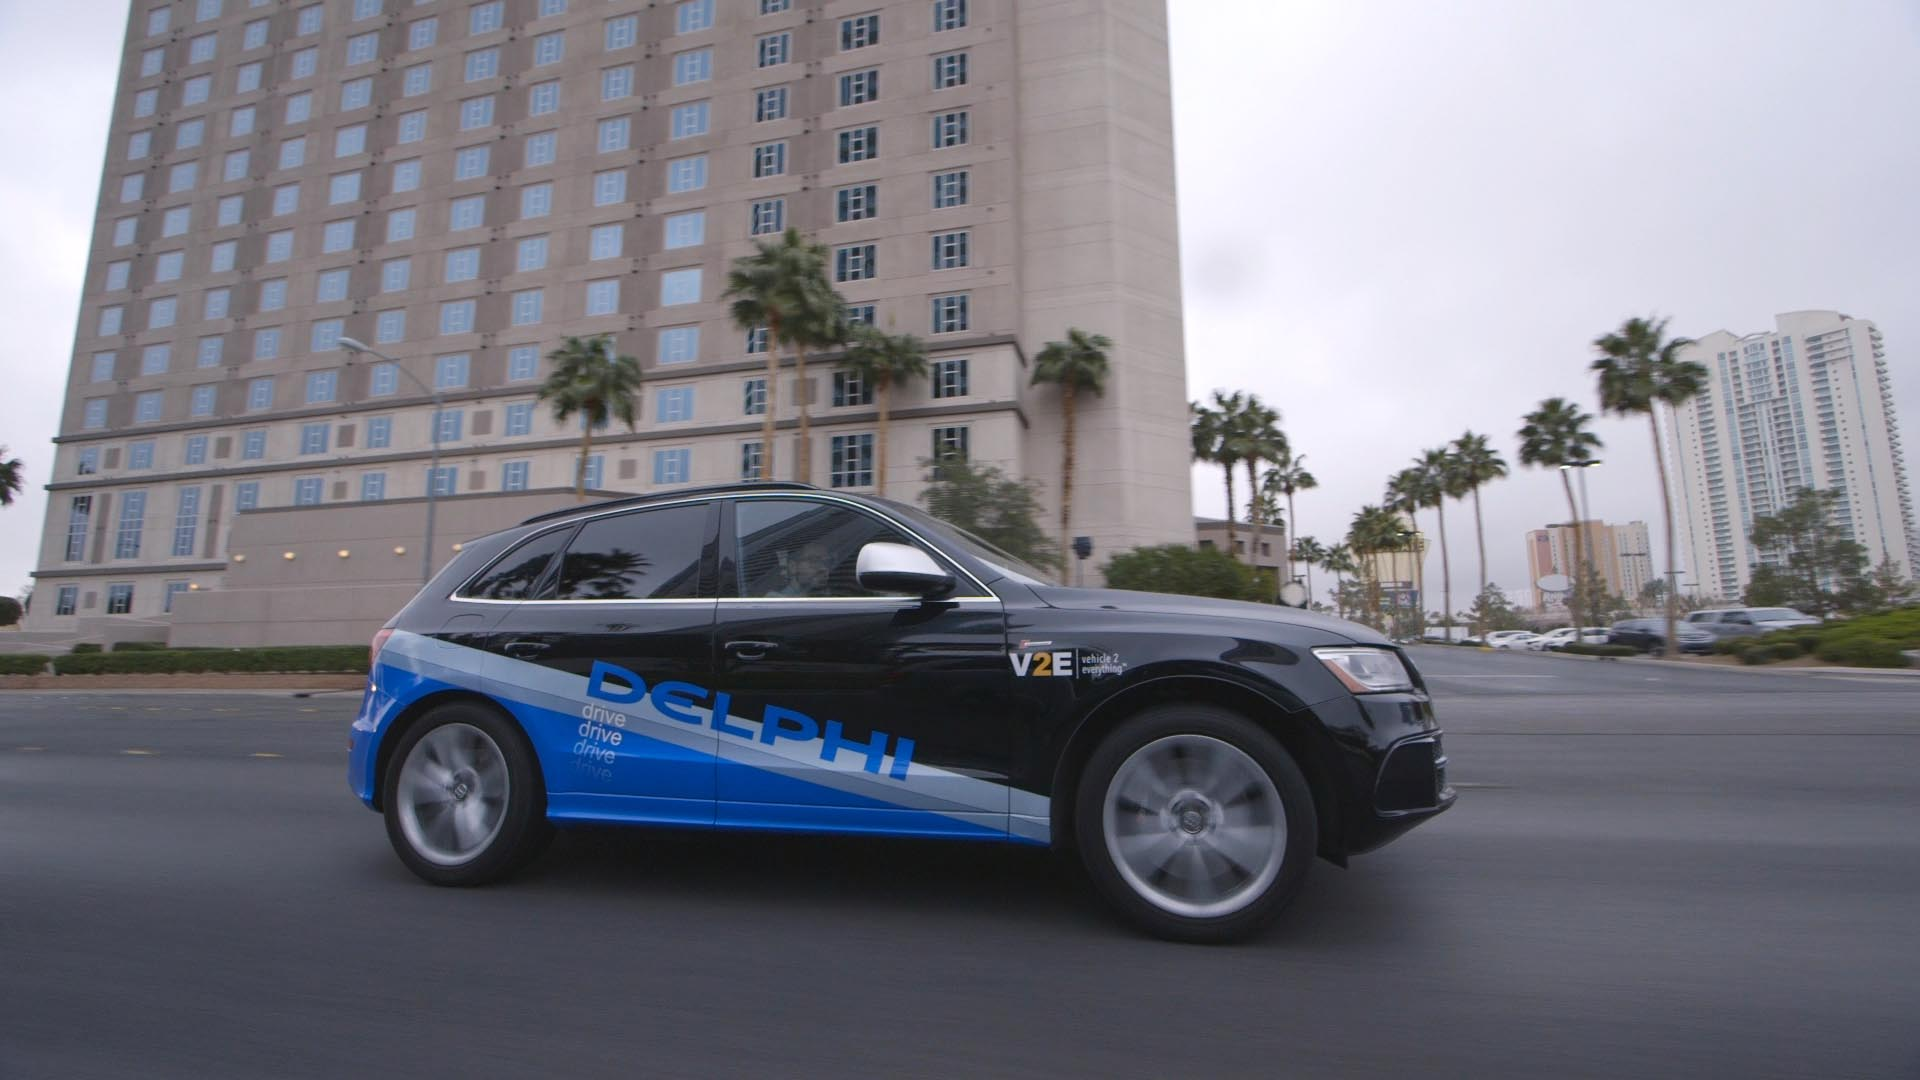 Delphi acquires self-driving startup nuTonomy for $450M